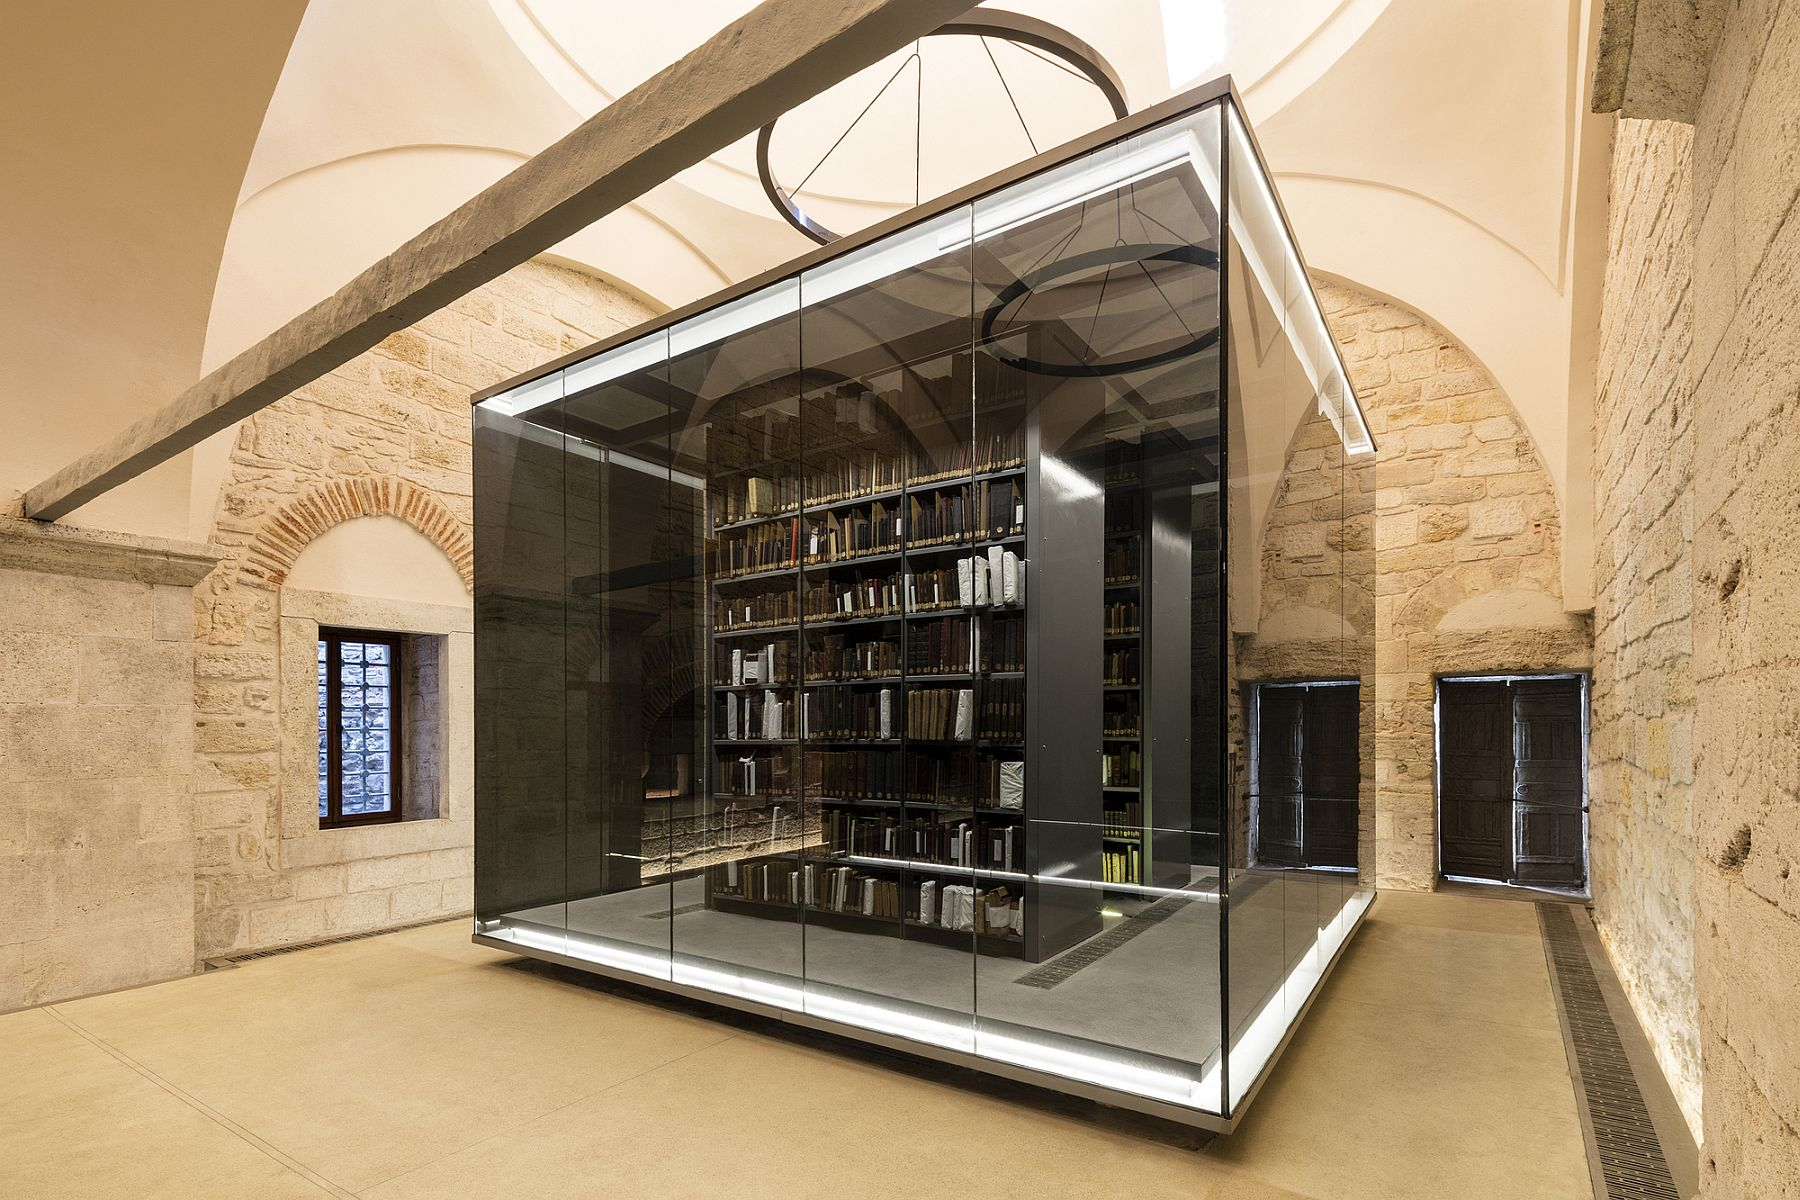 Illuminated glass boxes designed by Tabanlioglu Architects transform Istanbul's largest and oldest library